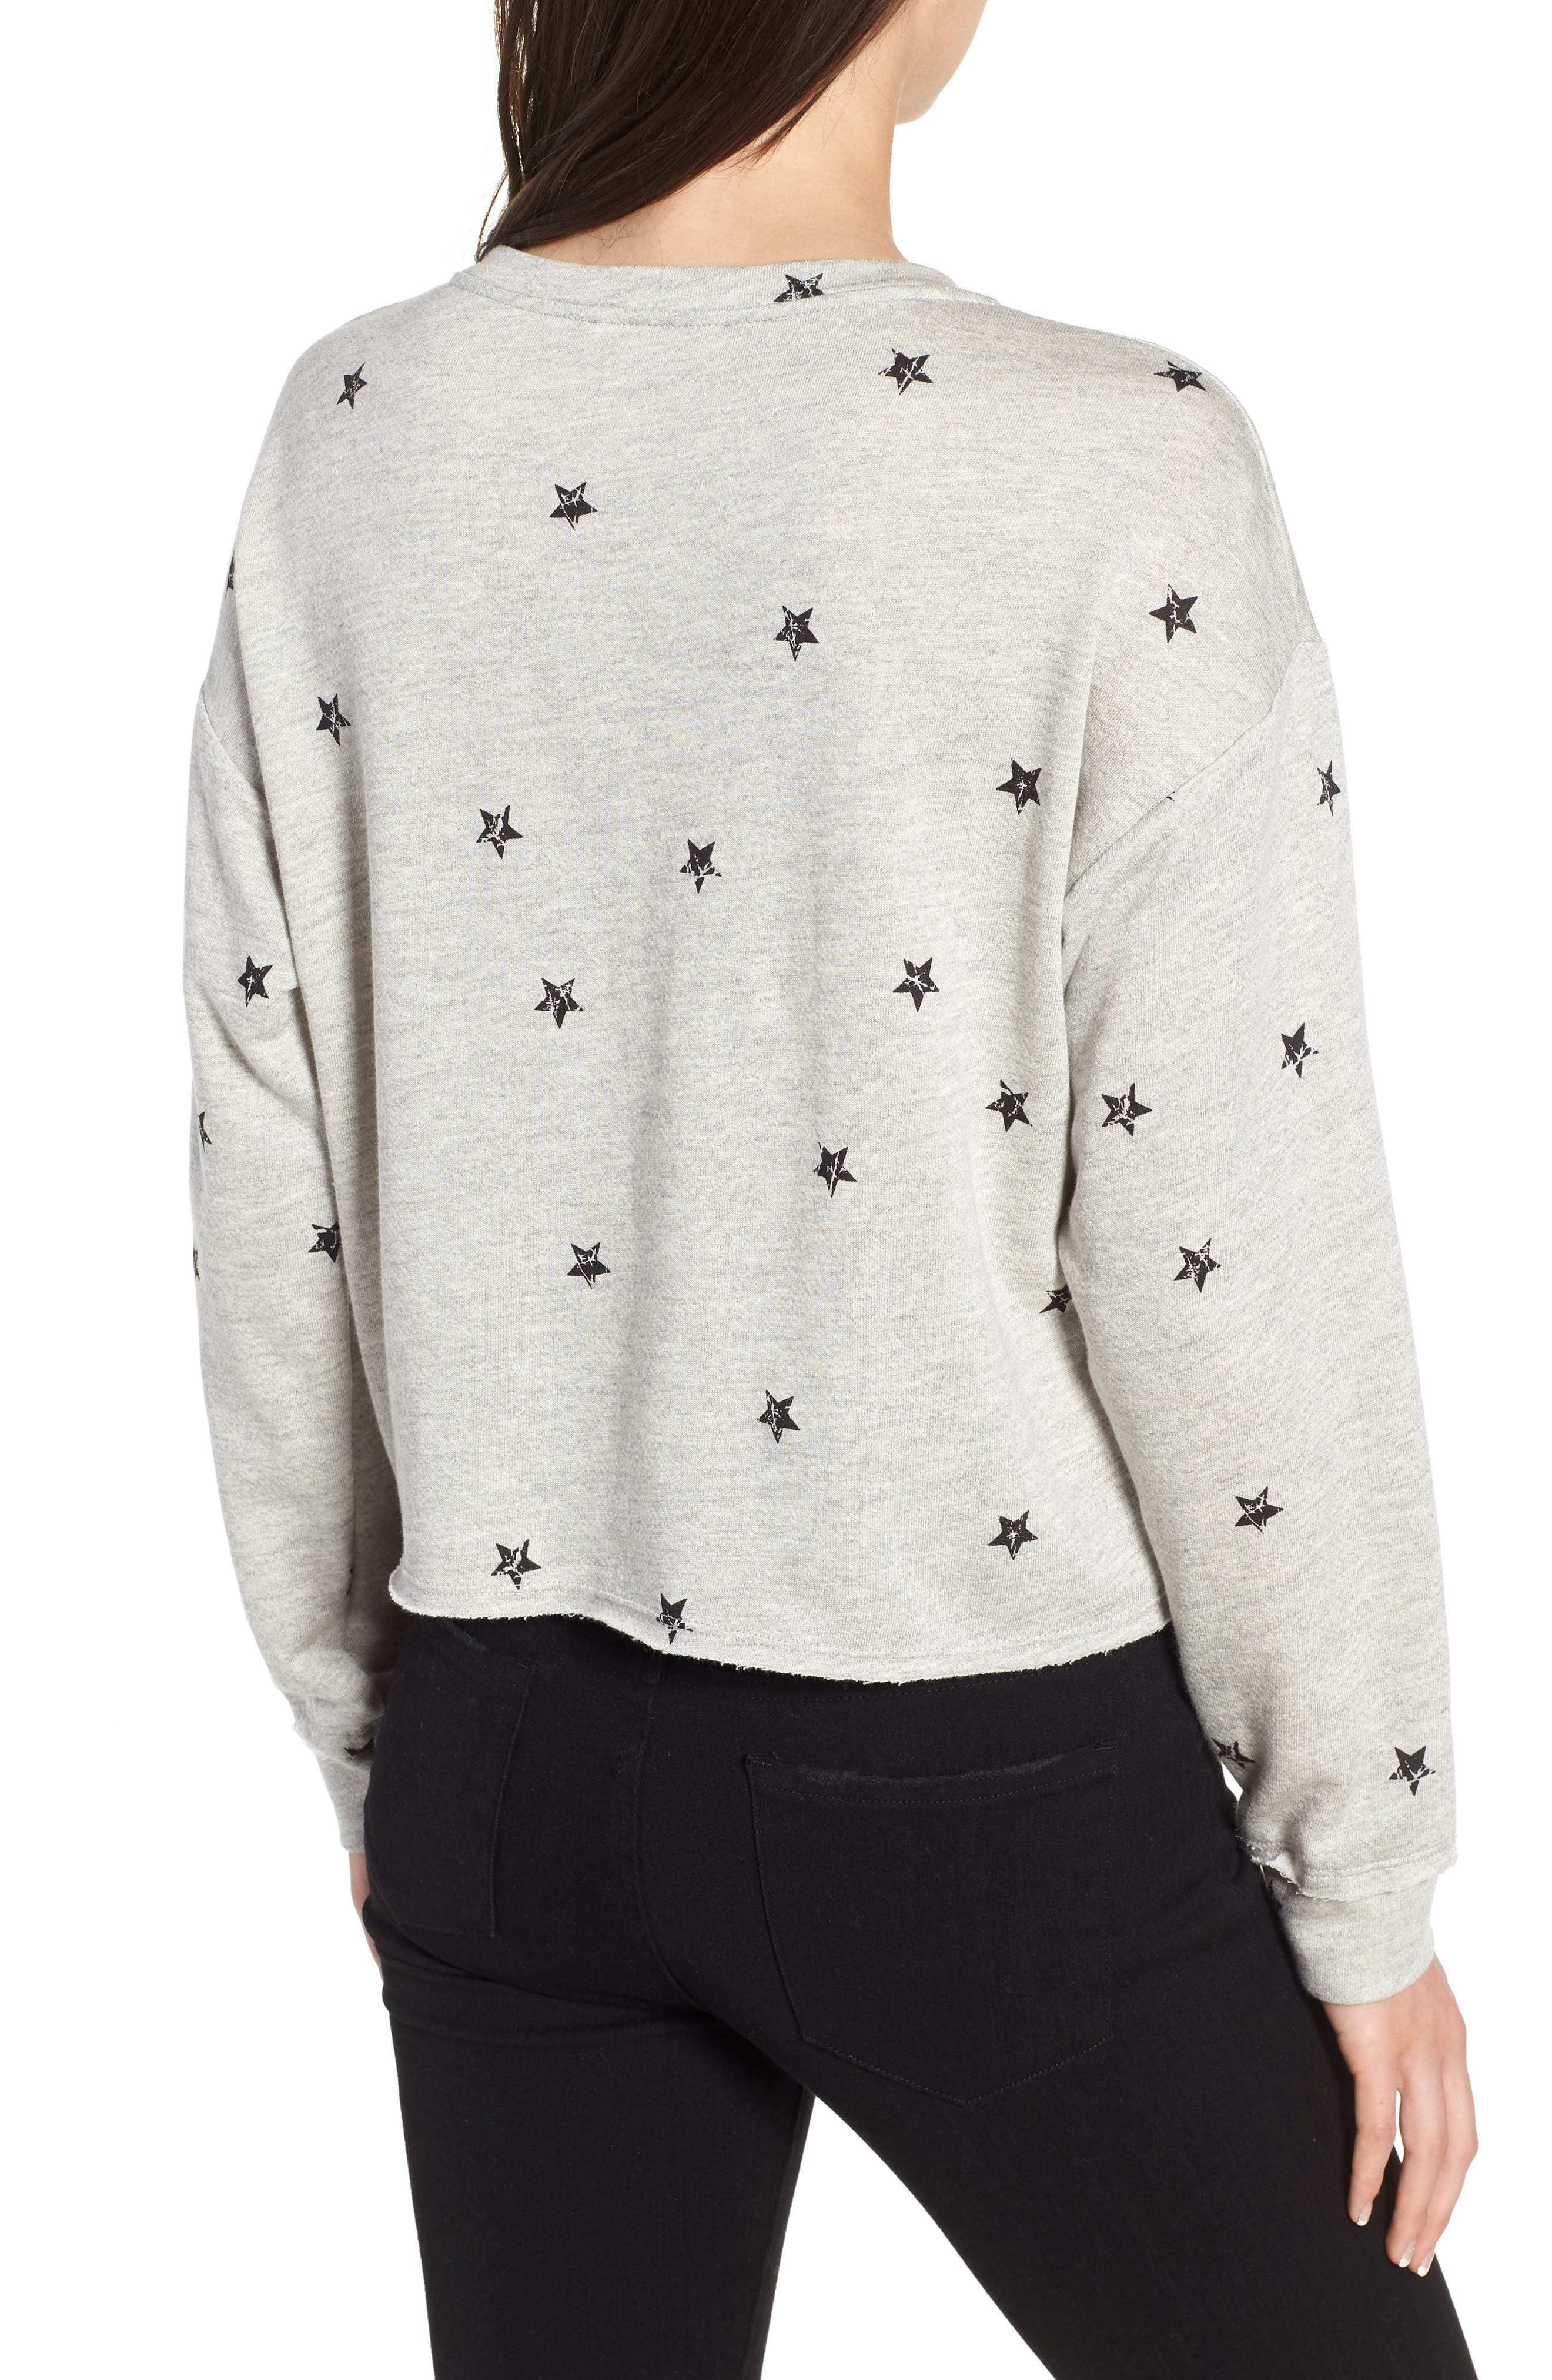 Star Print Sweatshirt,                             Alternate thumbnail 2, color,                             035